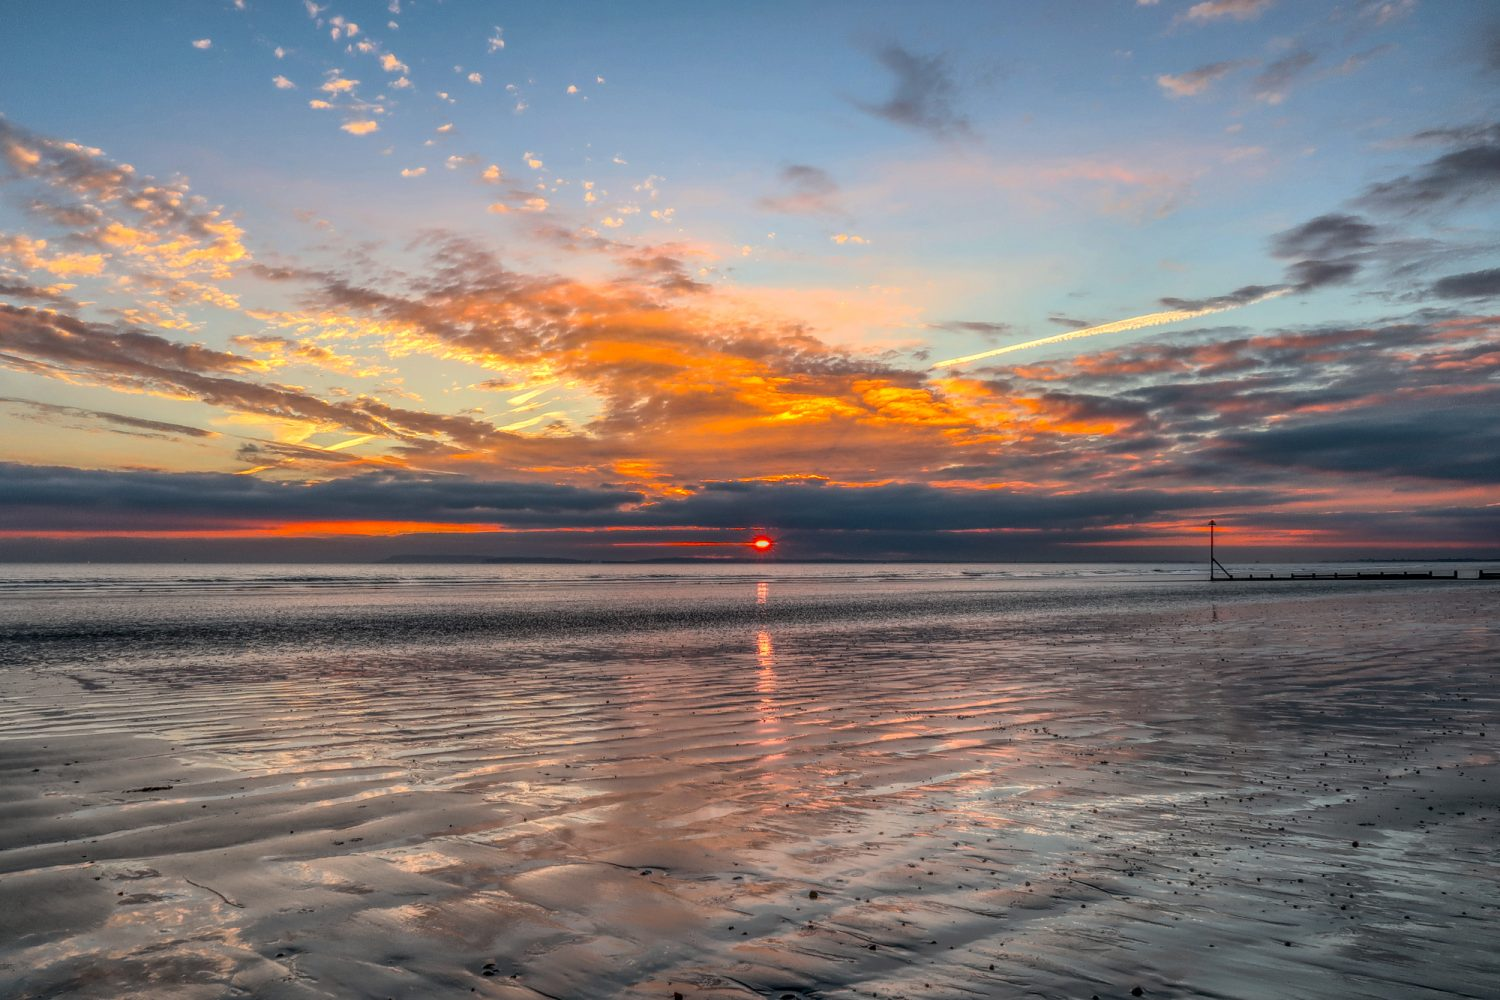 East Wittering beach at sunset